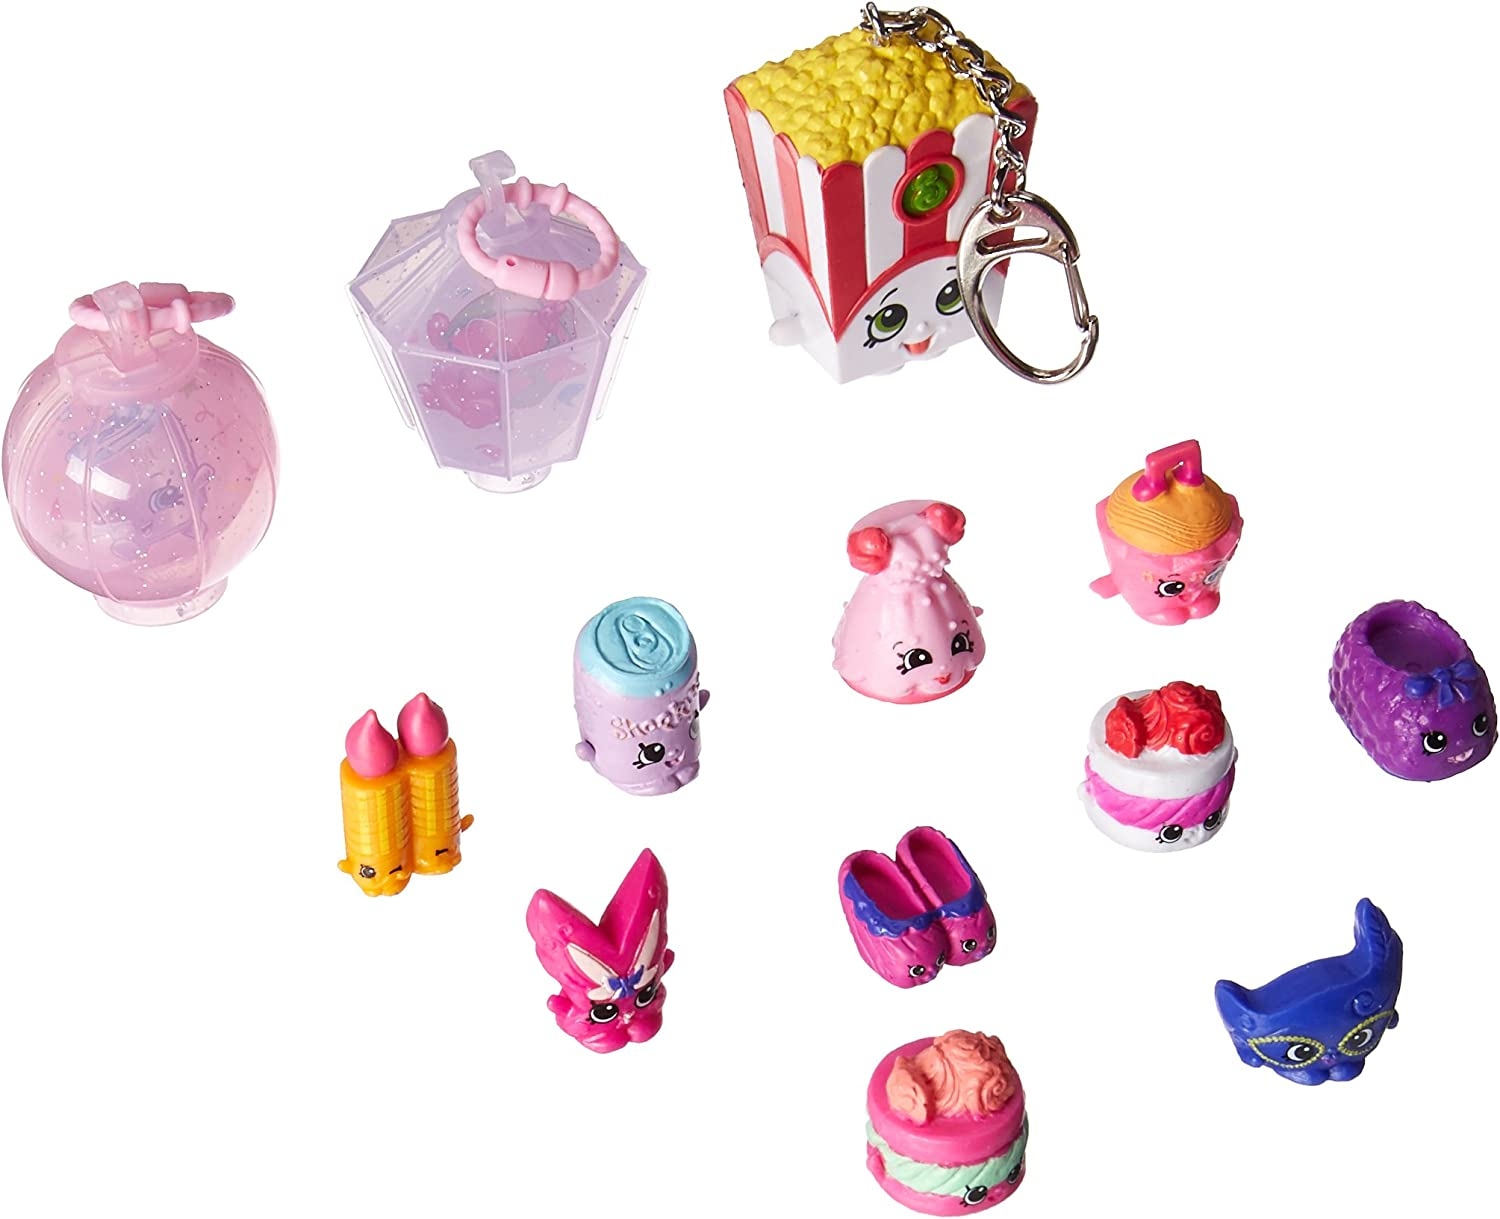 Shopkins Season 7 5 Pack of Shopkins 2 pack Join the Party